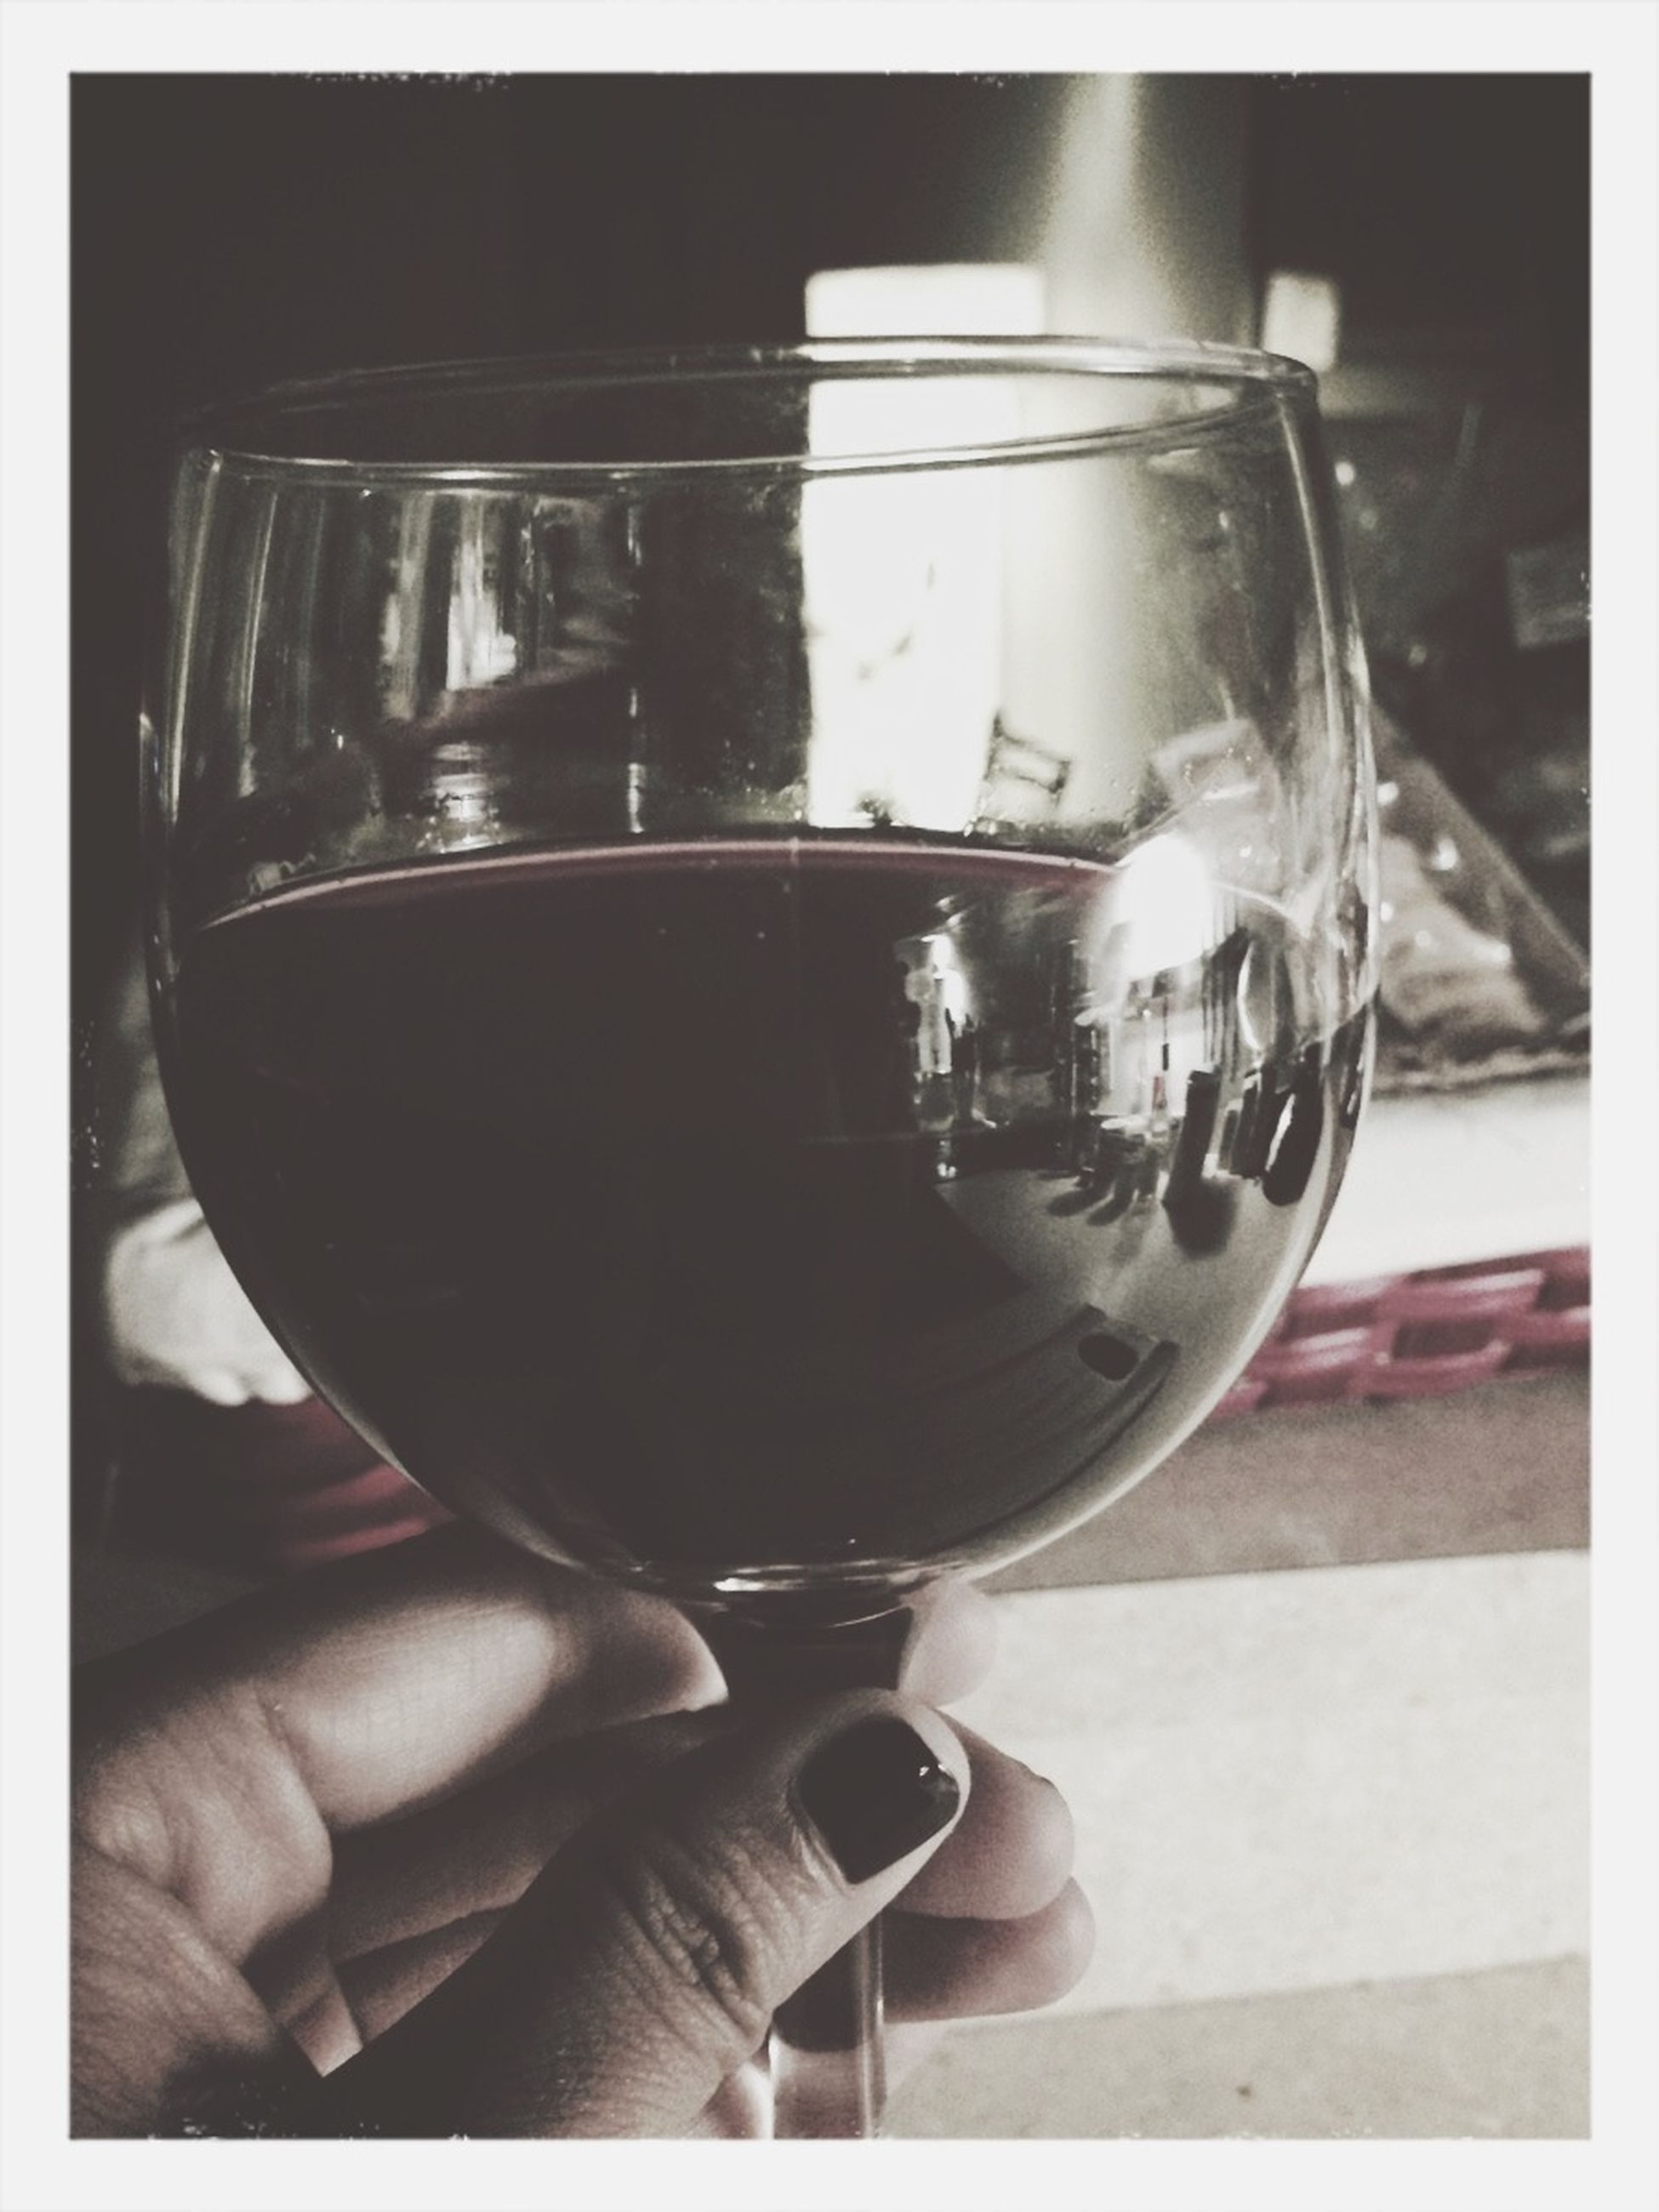 person, food and drink, drink, glass - material, holding, drinking glass, part of, refreshment, lifestyles, transparent, cropped, close-up, unrecognizable person, alcohol, freshness, leisure activity, glass